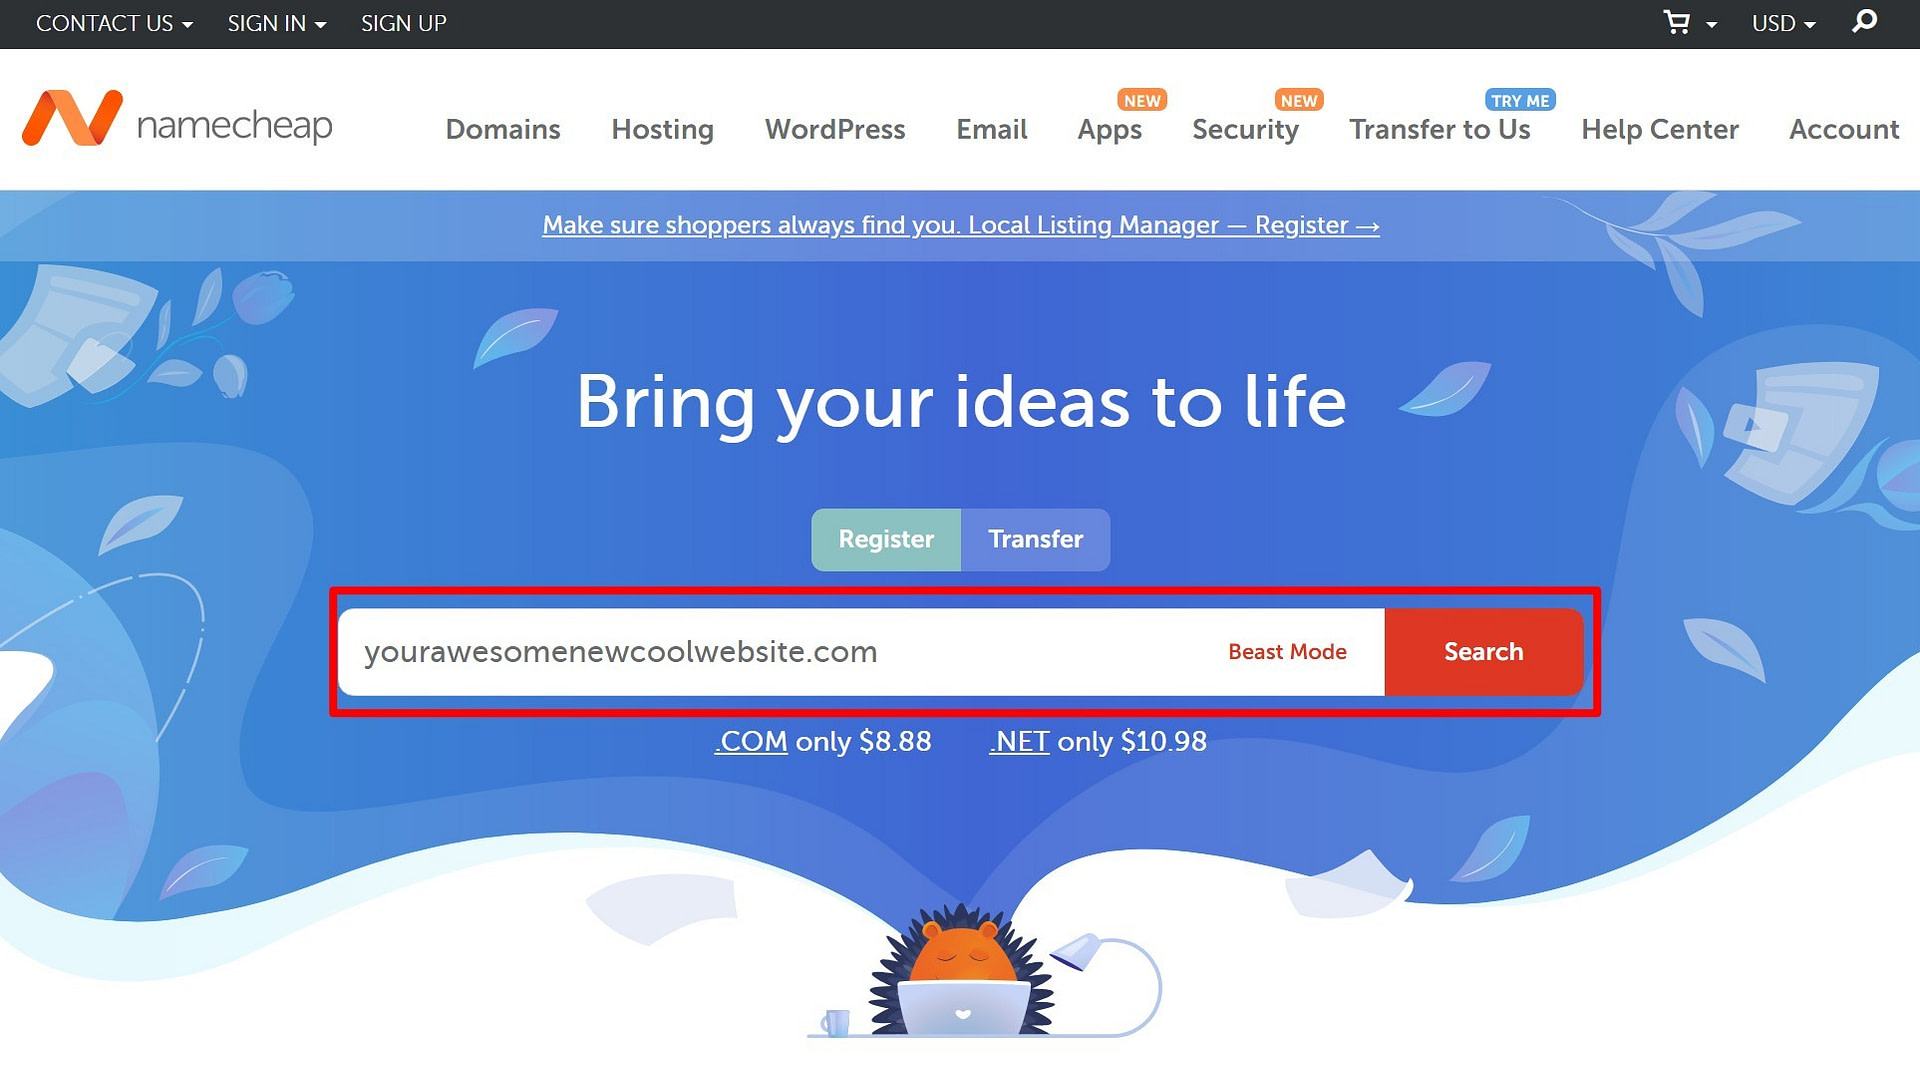 How to buy a domain using the Namecheap domain search